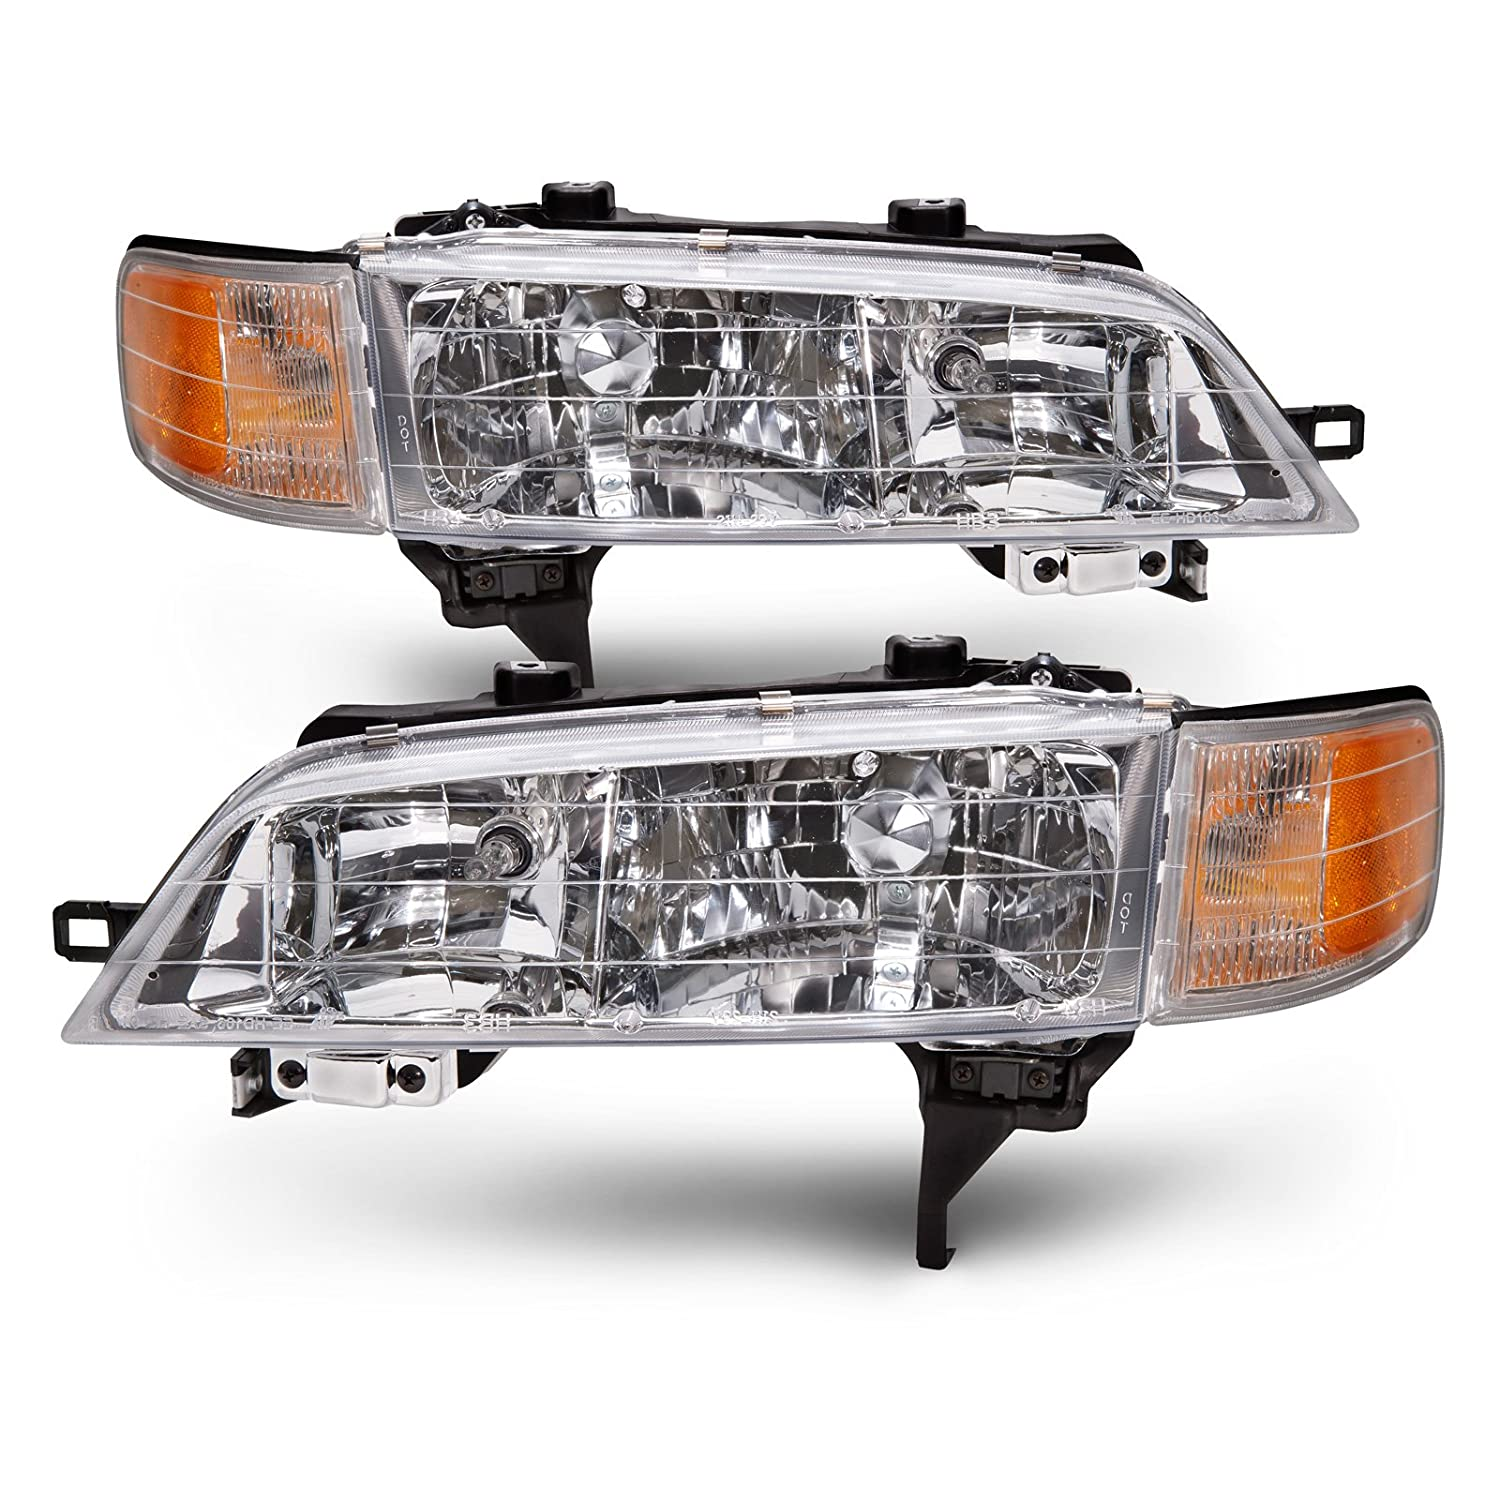 HEADLIGHTSDEPOT Chrome Housing Halogen Headlights Compatible with Honda  Accord 1994-1997 Includes Left Driver and Right Passenger Side Headlamps